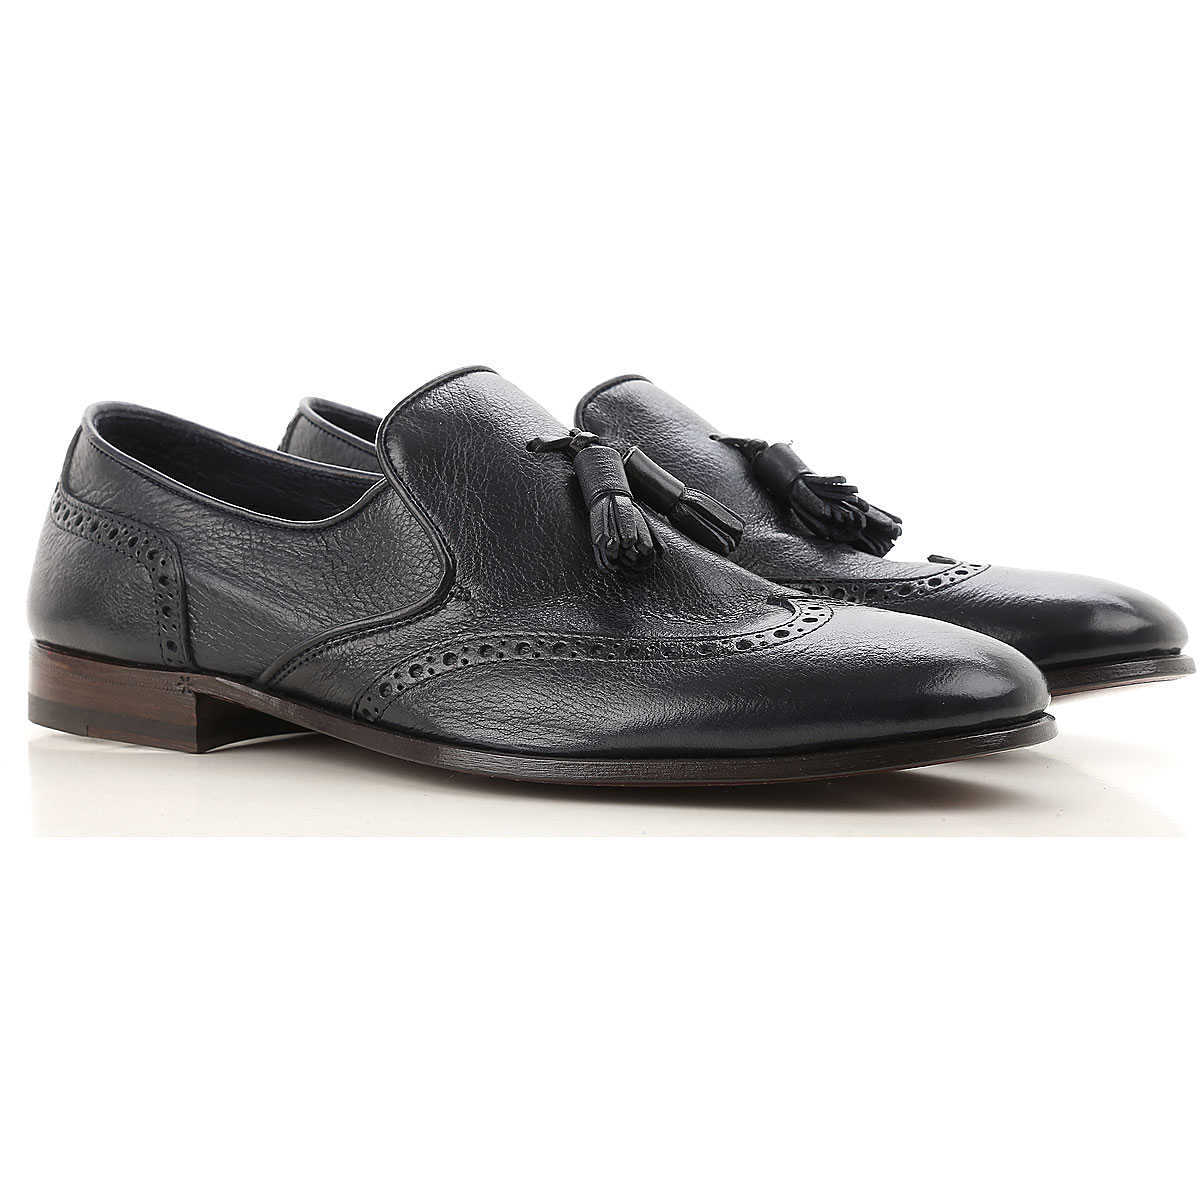 Henderson Loafers for Men Blue Ink Canada - GOOFASH - Mens LOAFERS